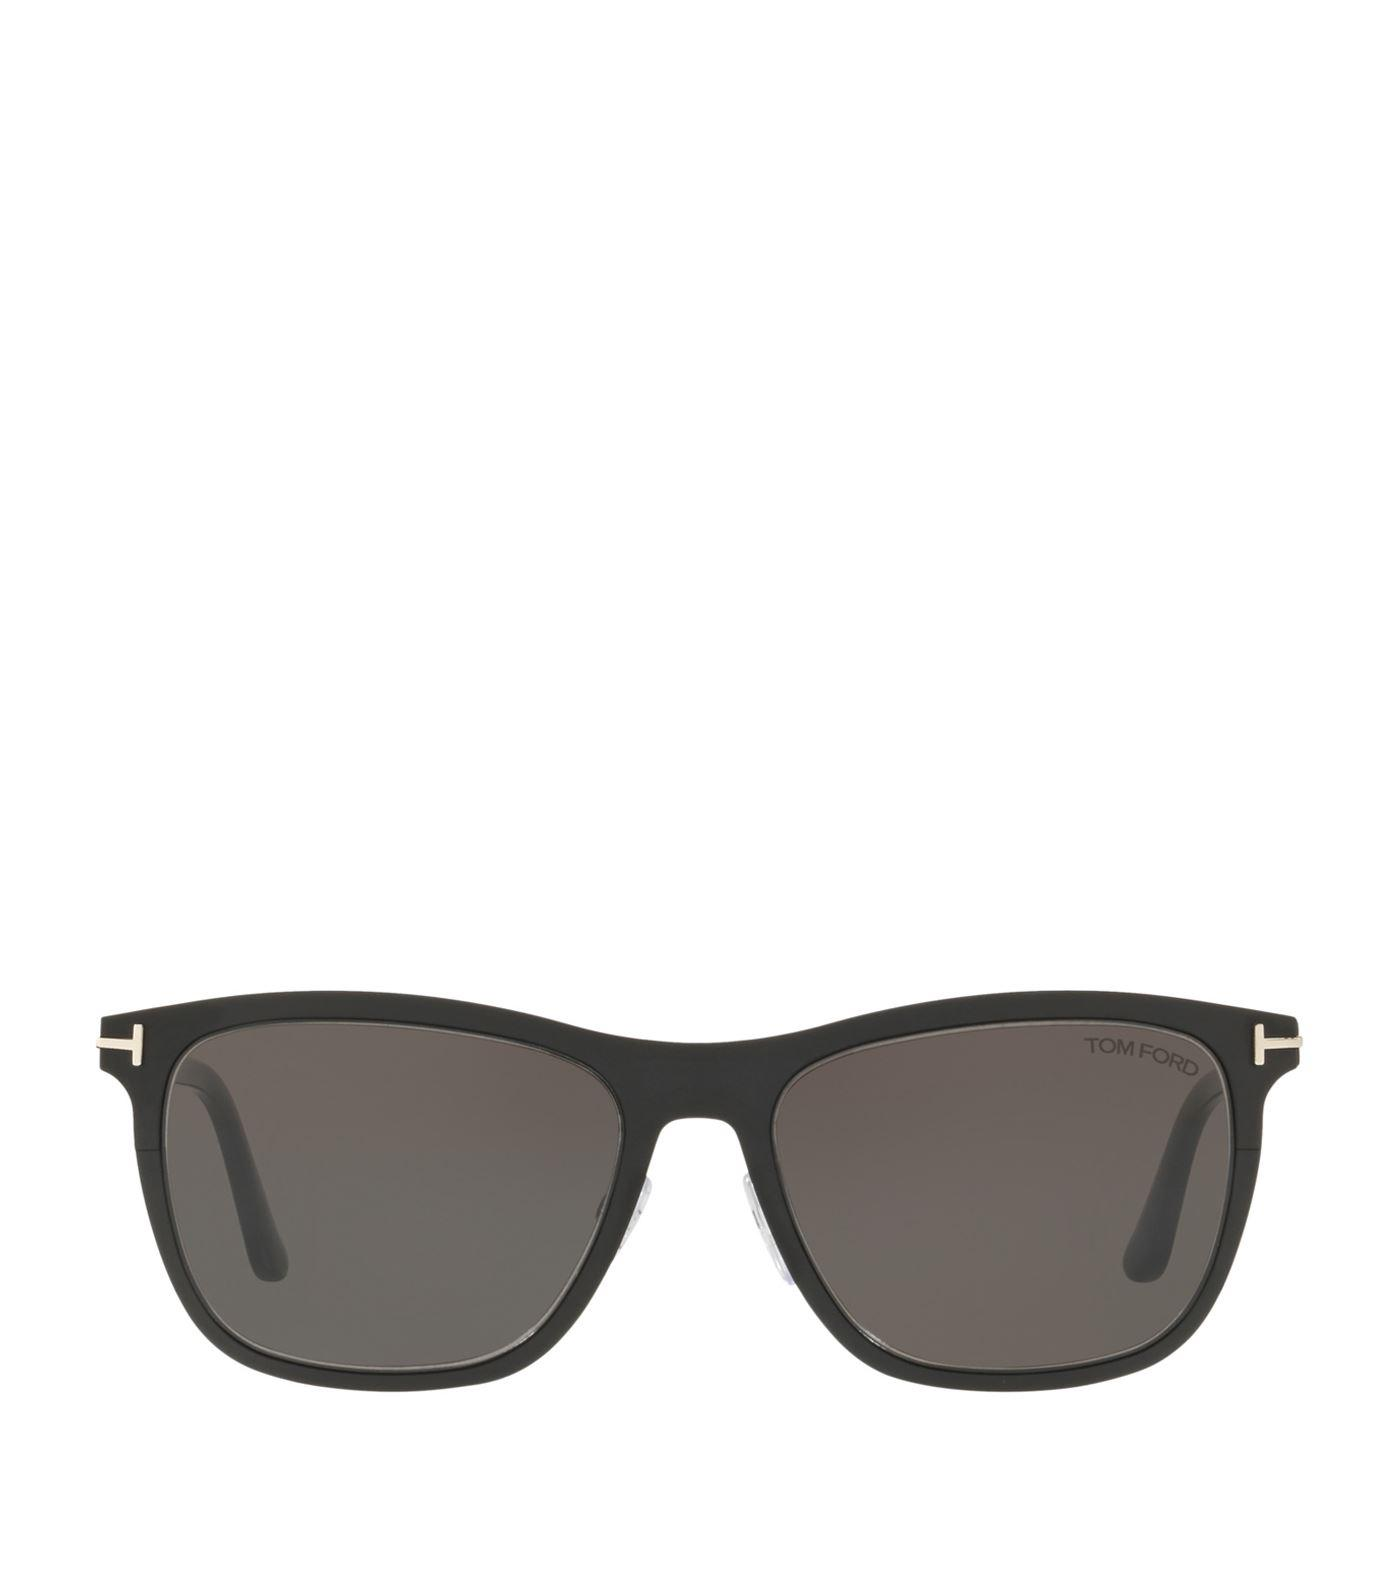 c99183cdfc0 Lyst - Tom Ford Alasdhair Sunglasses in Black - Save 54.54545454545455%